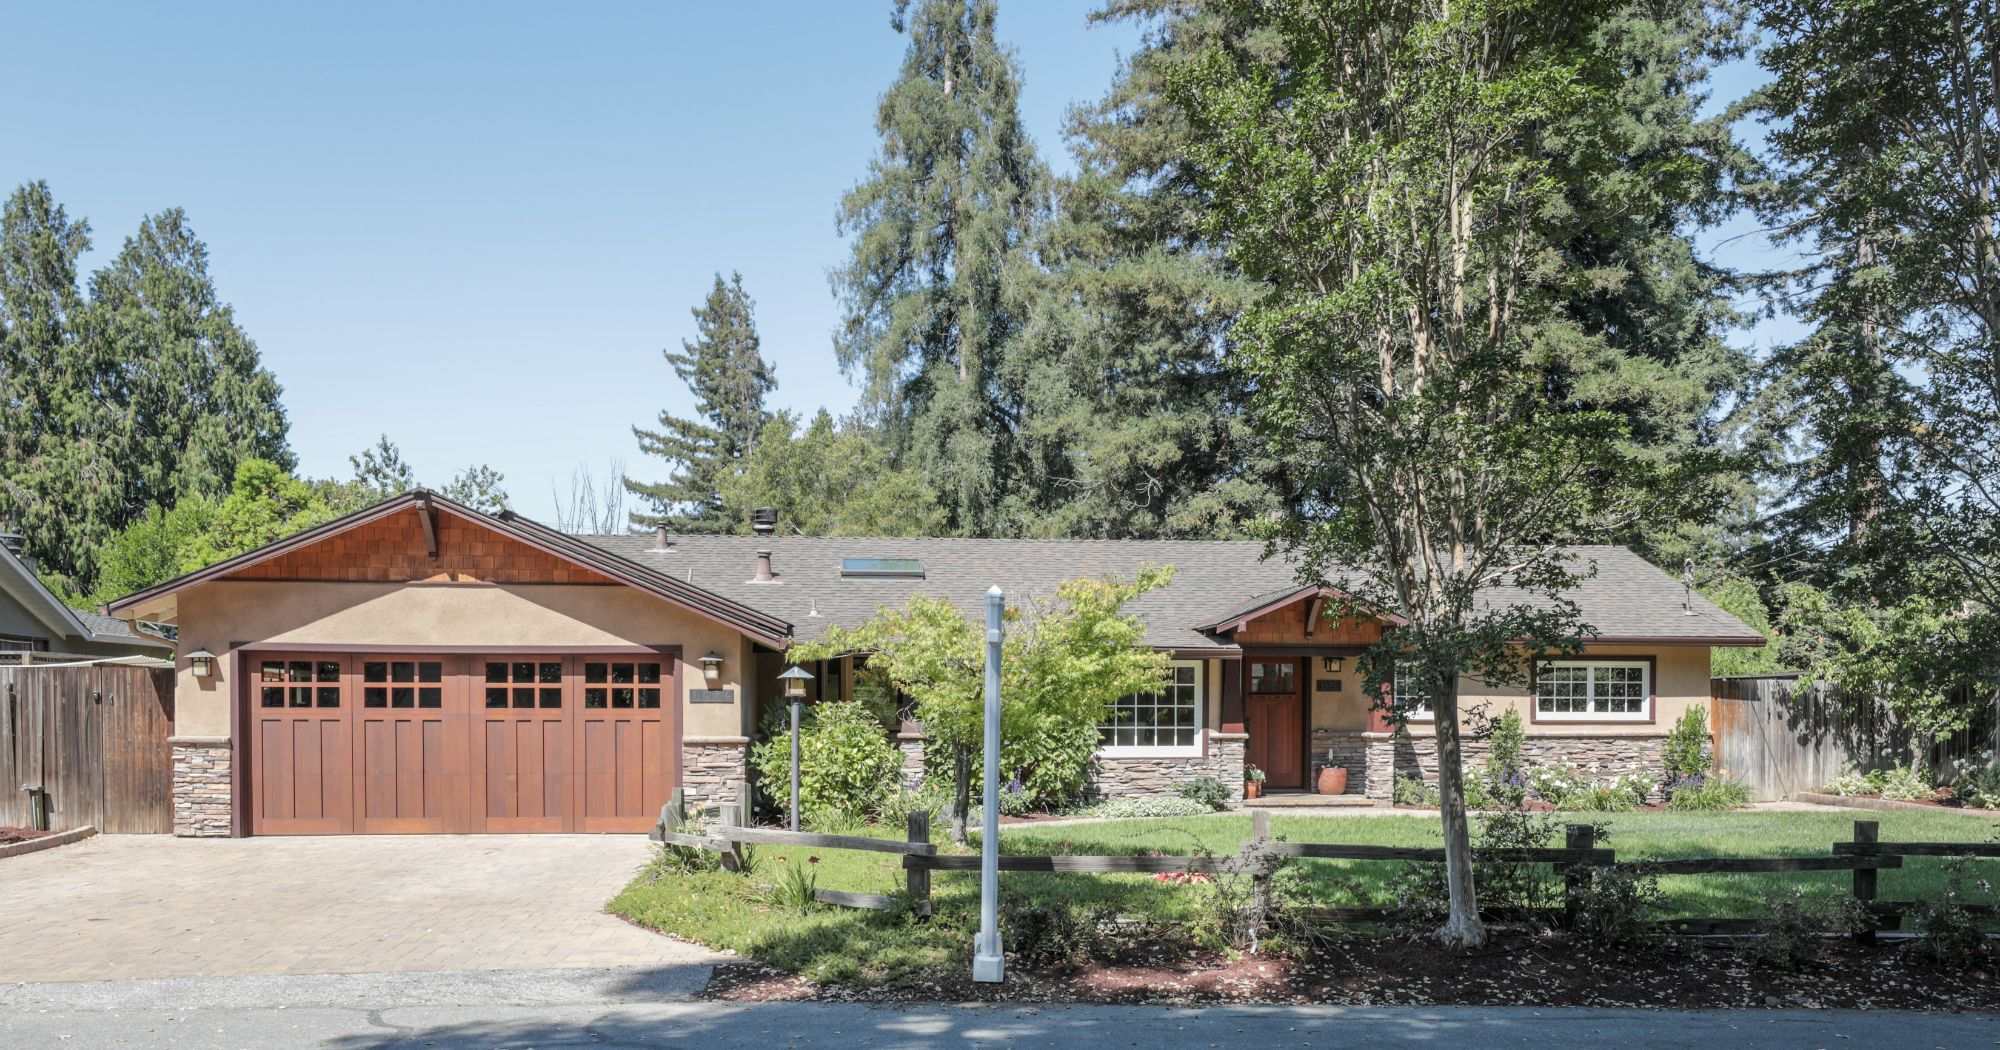 Luxury homes for sale in Los Altos and Los Altos Hills